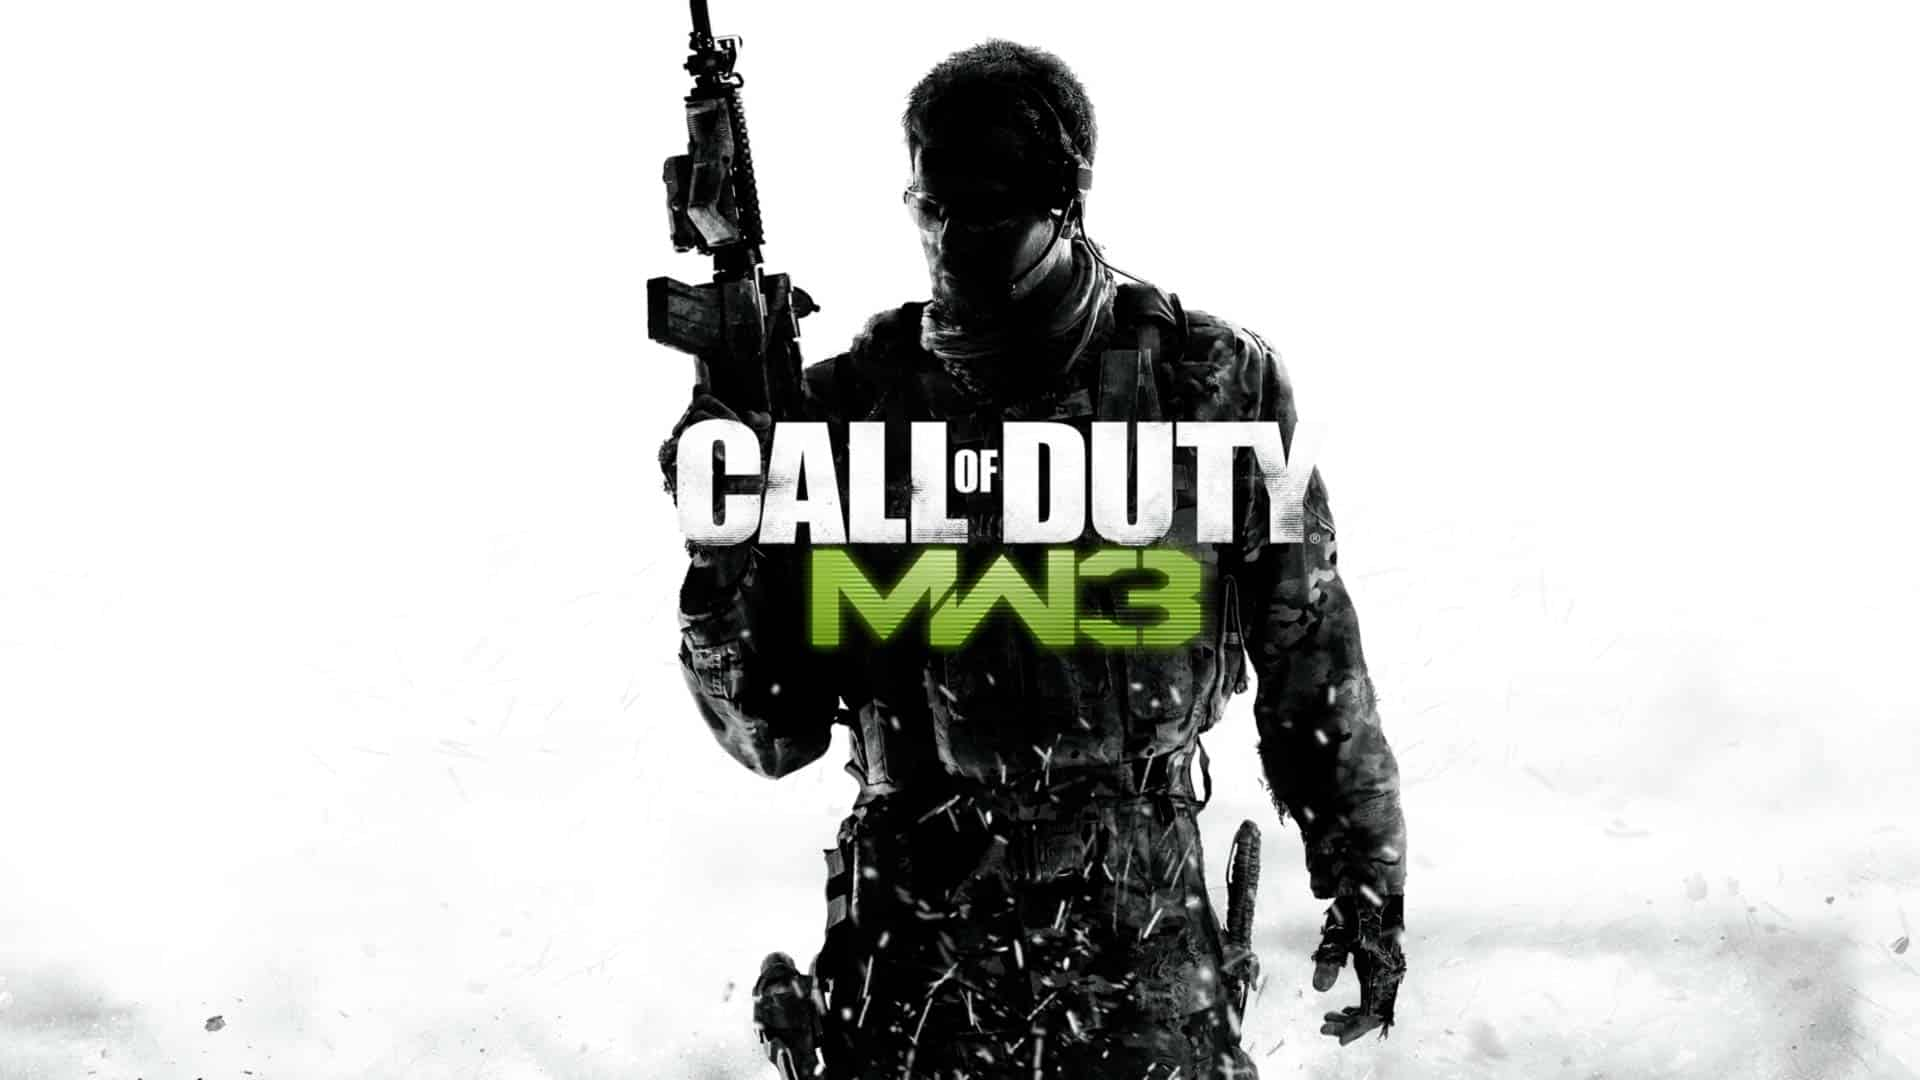 Call of Duty Modern Warfare 3 PS4 HACK Download Game Full